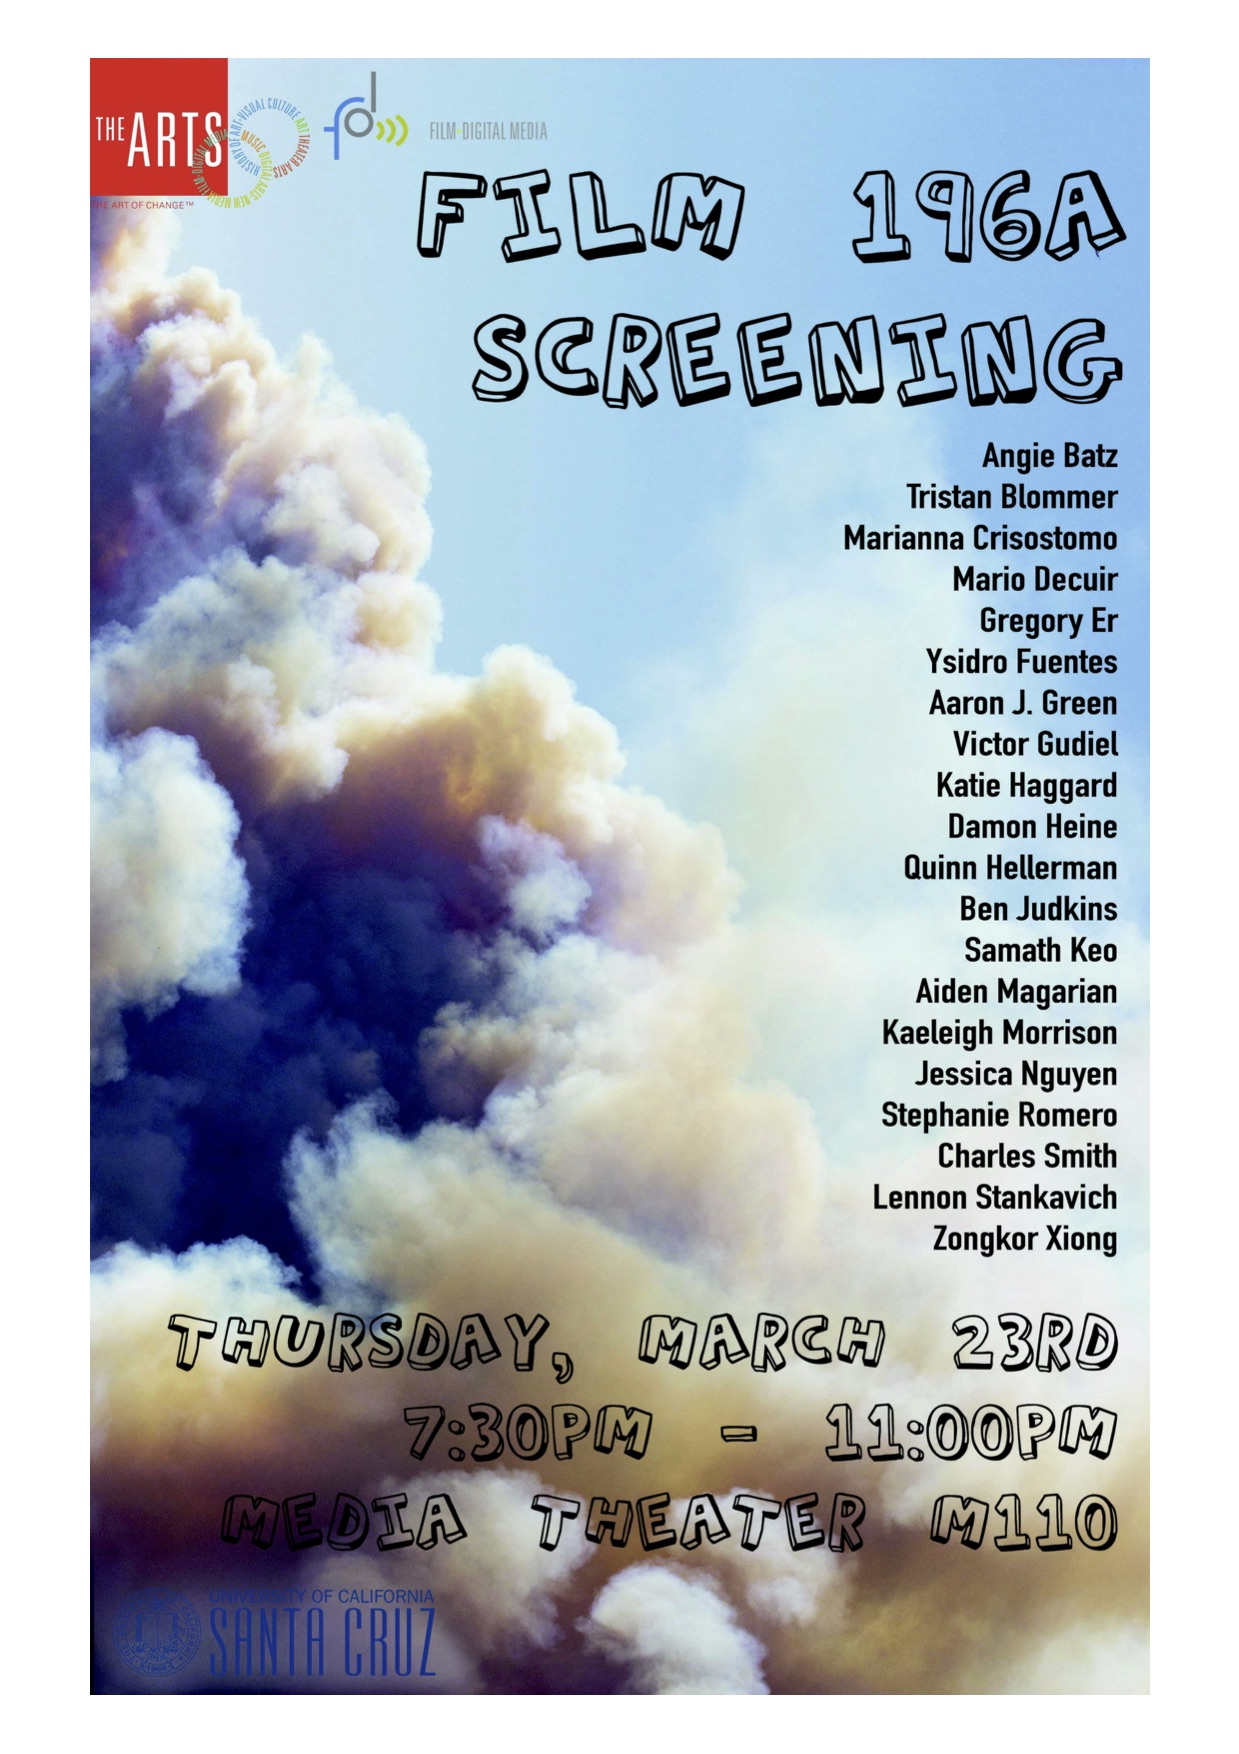 Flyer for Senior Production Screening